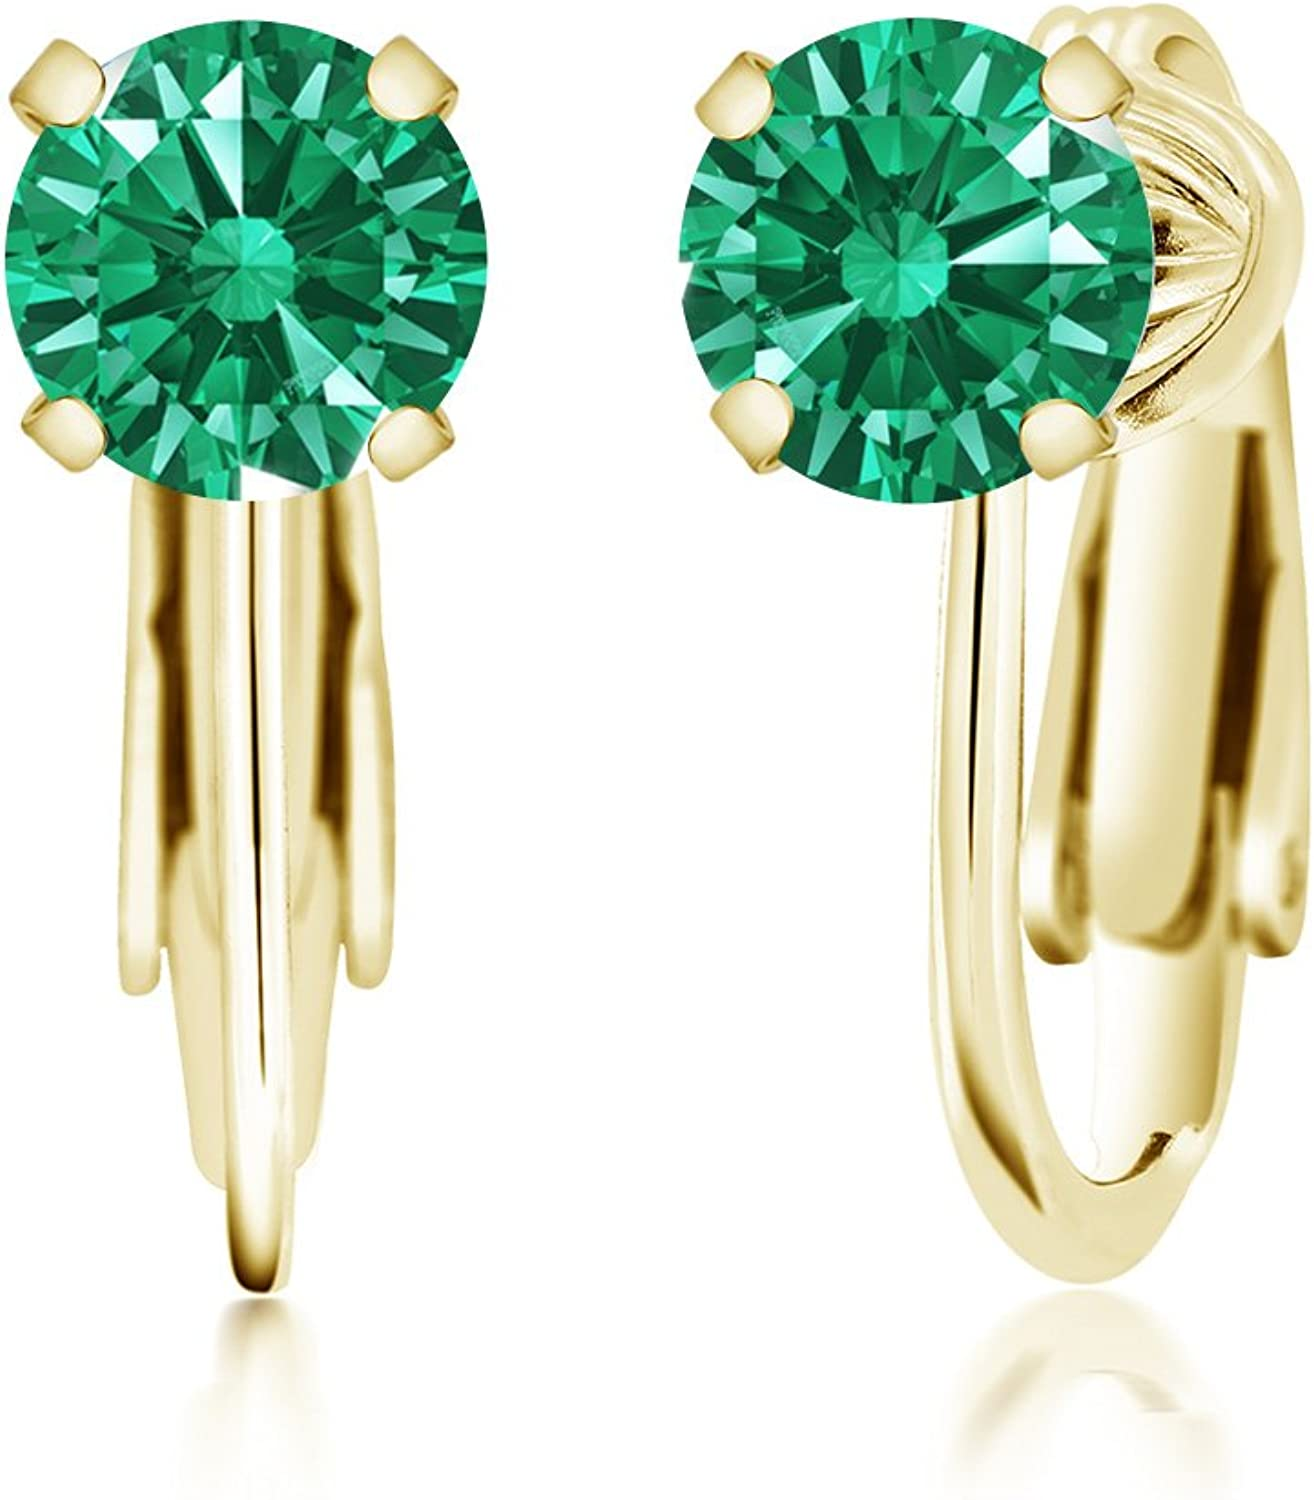 Carlo white Green 925 Yellow gold Plated Silver Earrings Made With Swarovski Zirconia